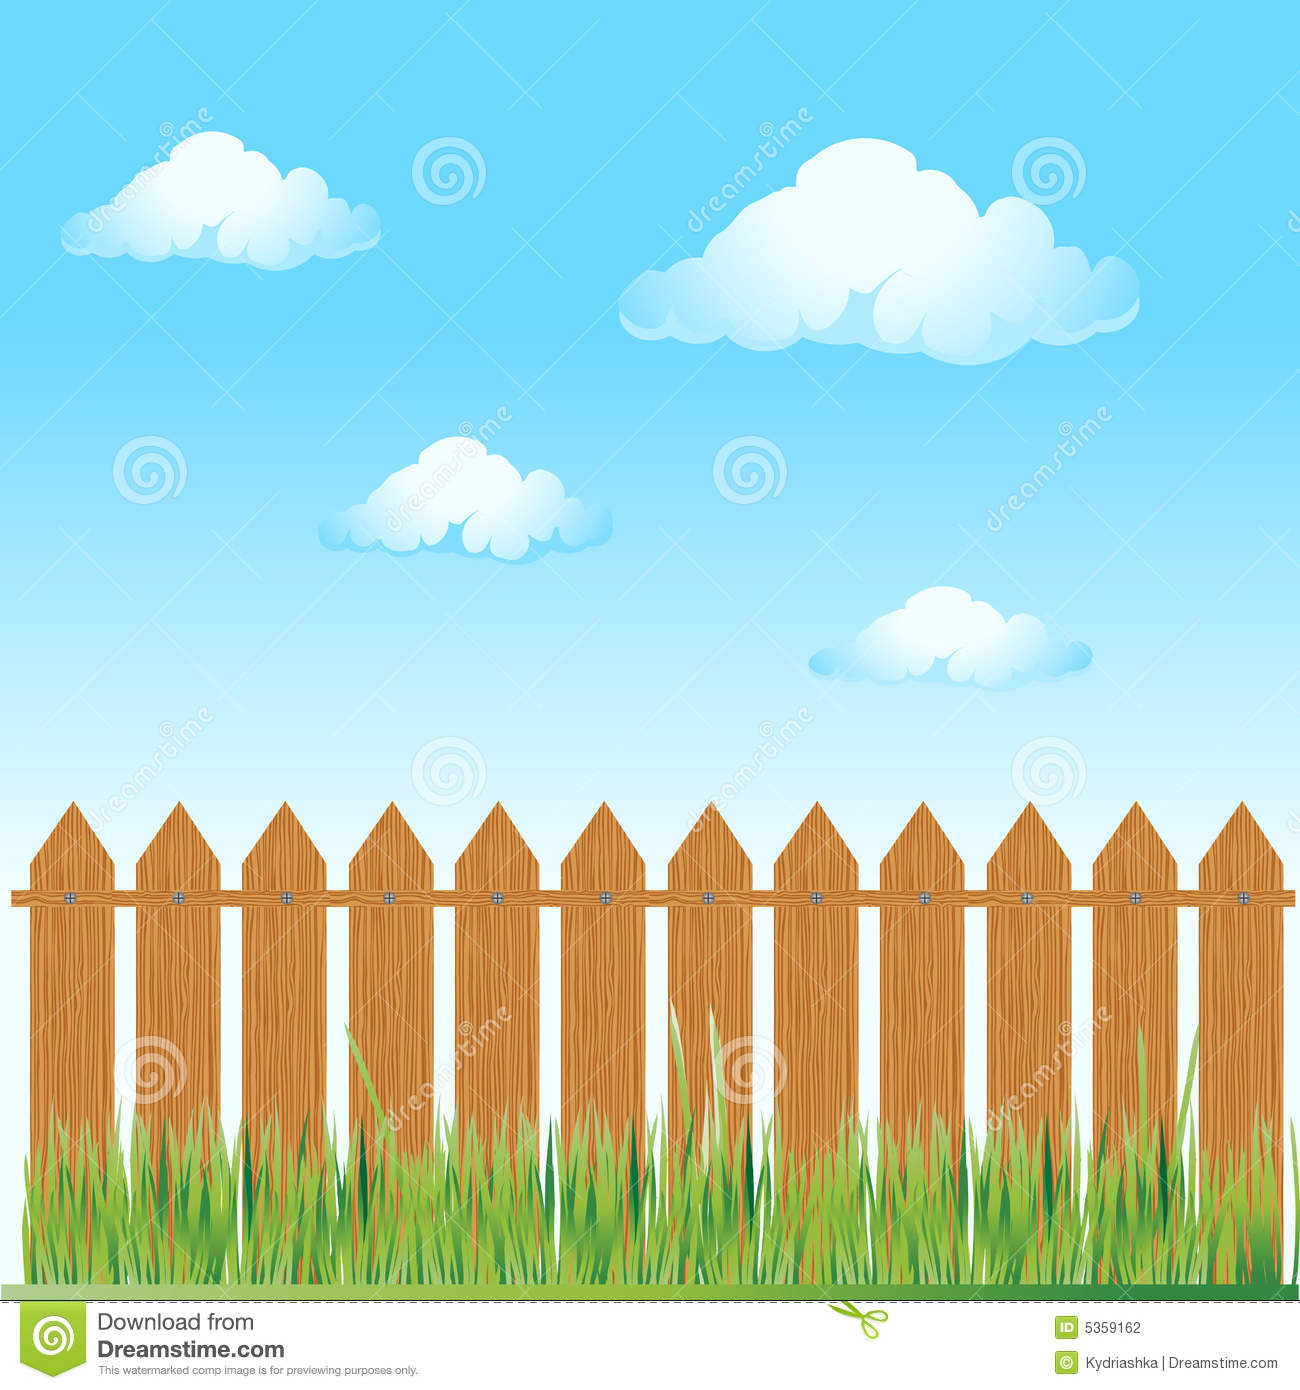 Wooden Fence Summer Grass Stock Vector Illustration Of